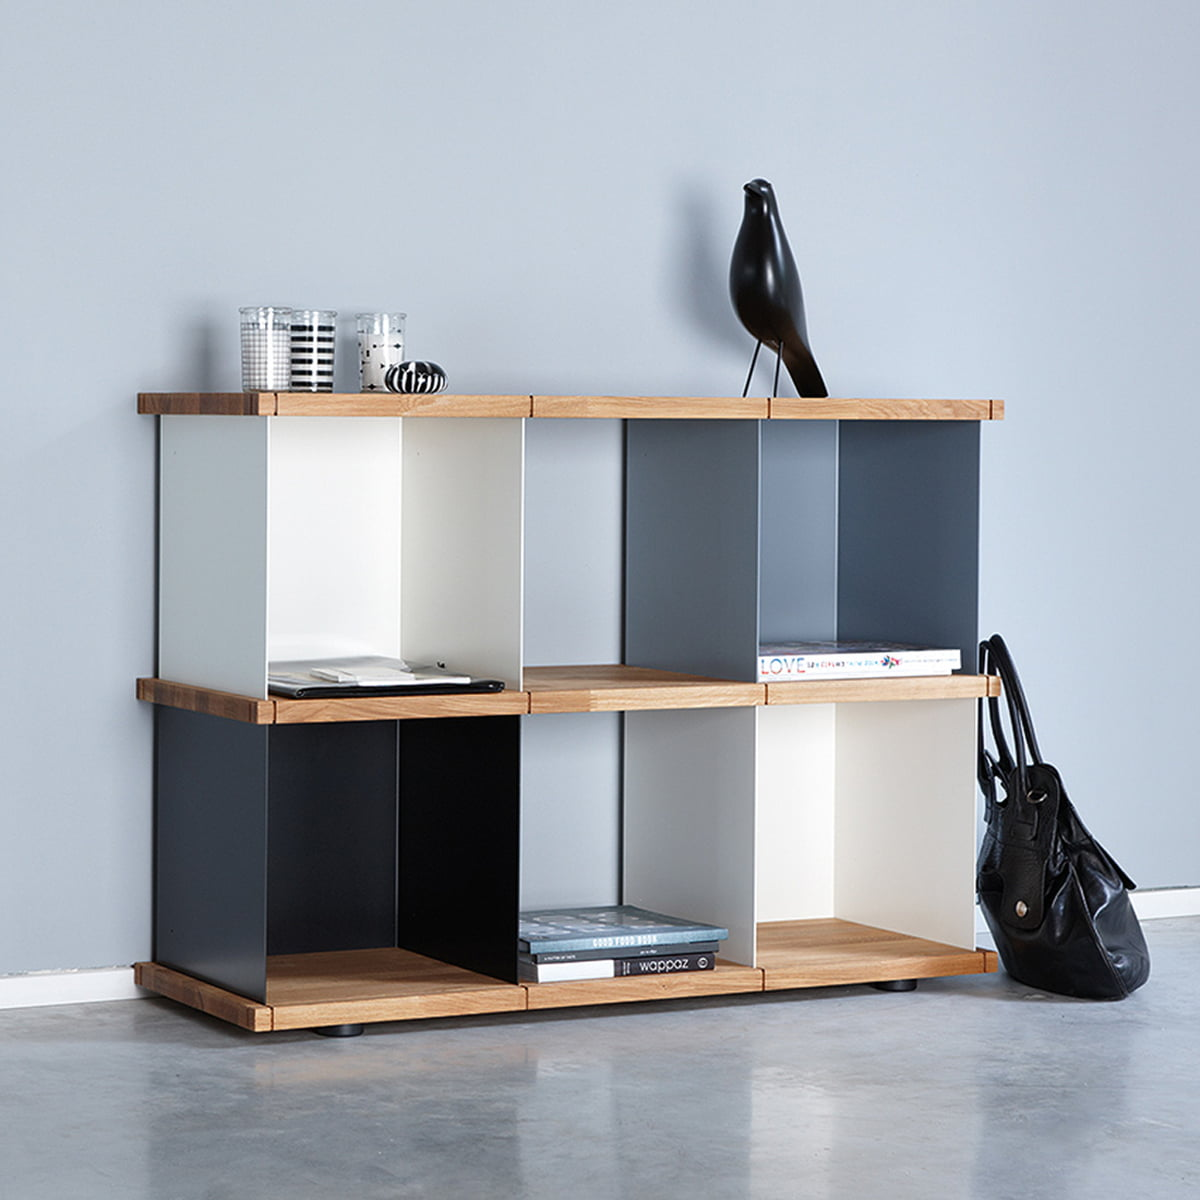 yu set 2 von konstantin slawinski im shop. Black Bedroom Furniture Sets. Home Design Ideas